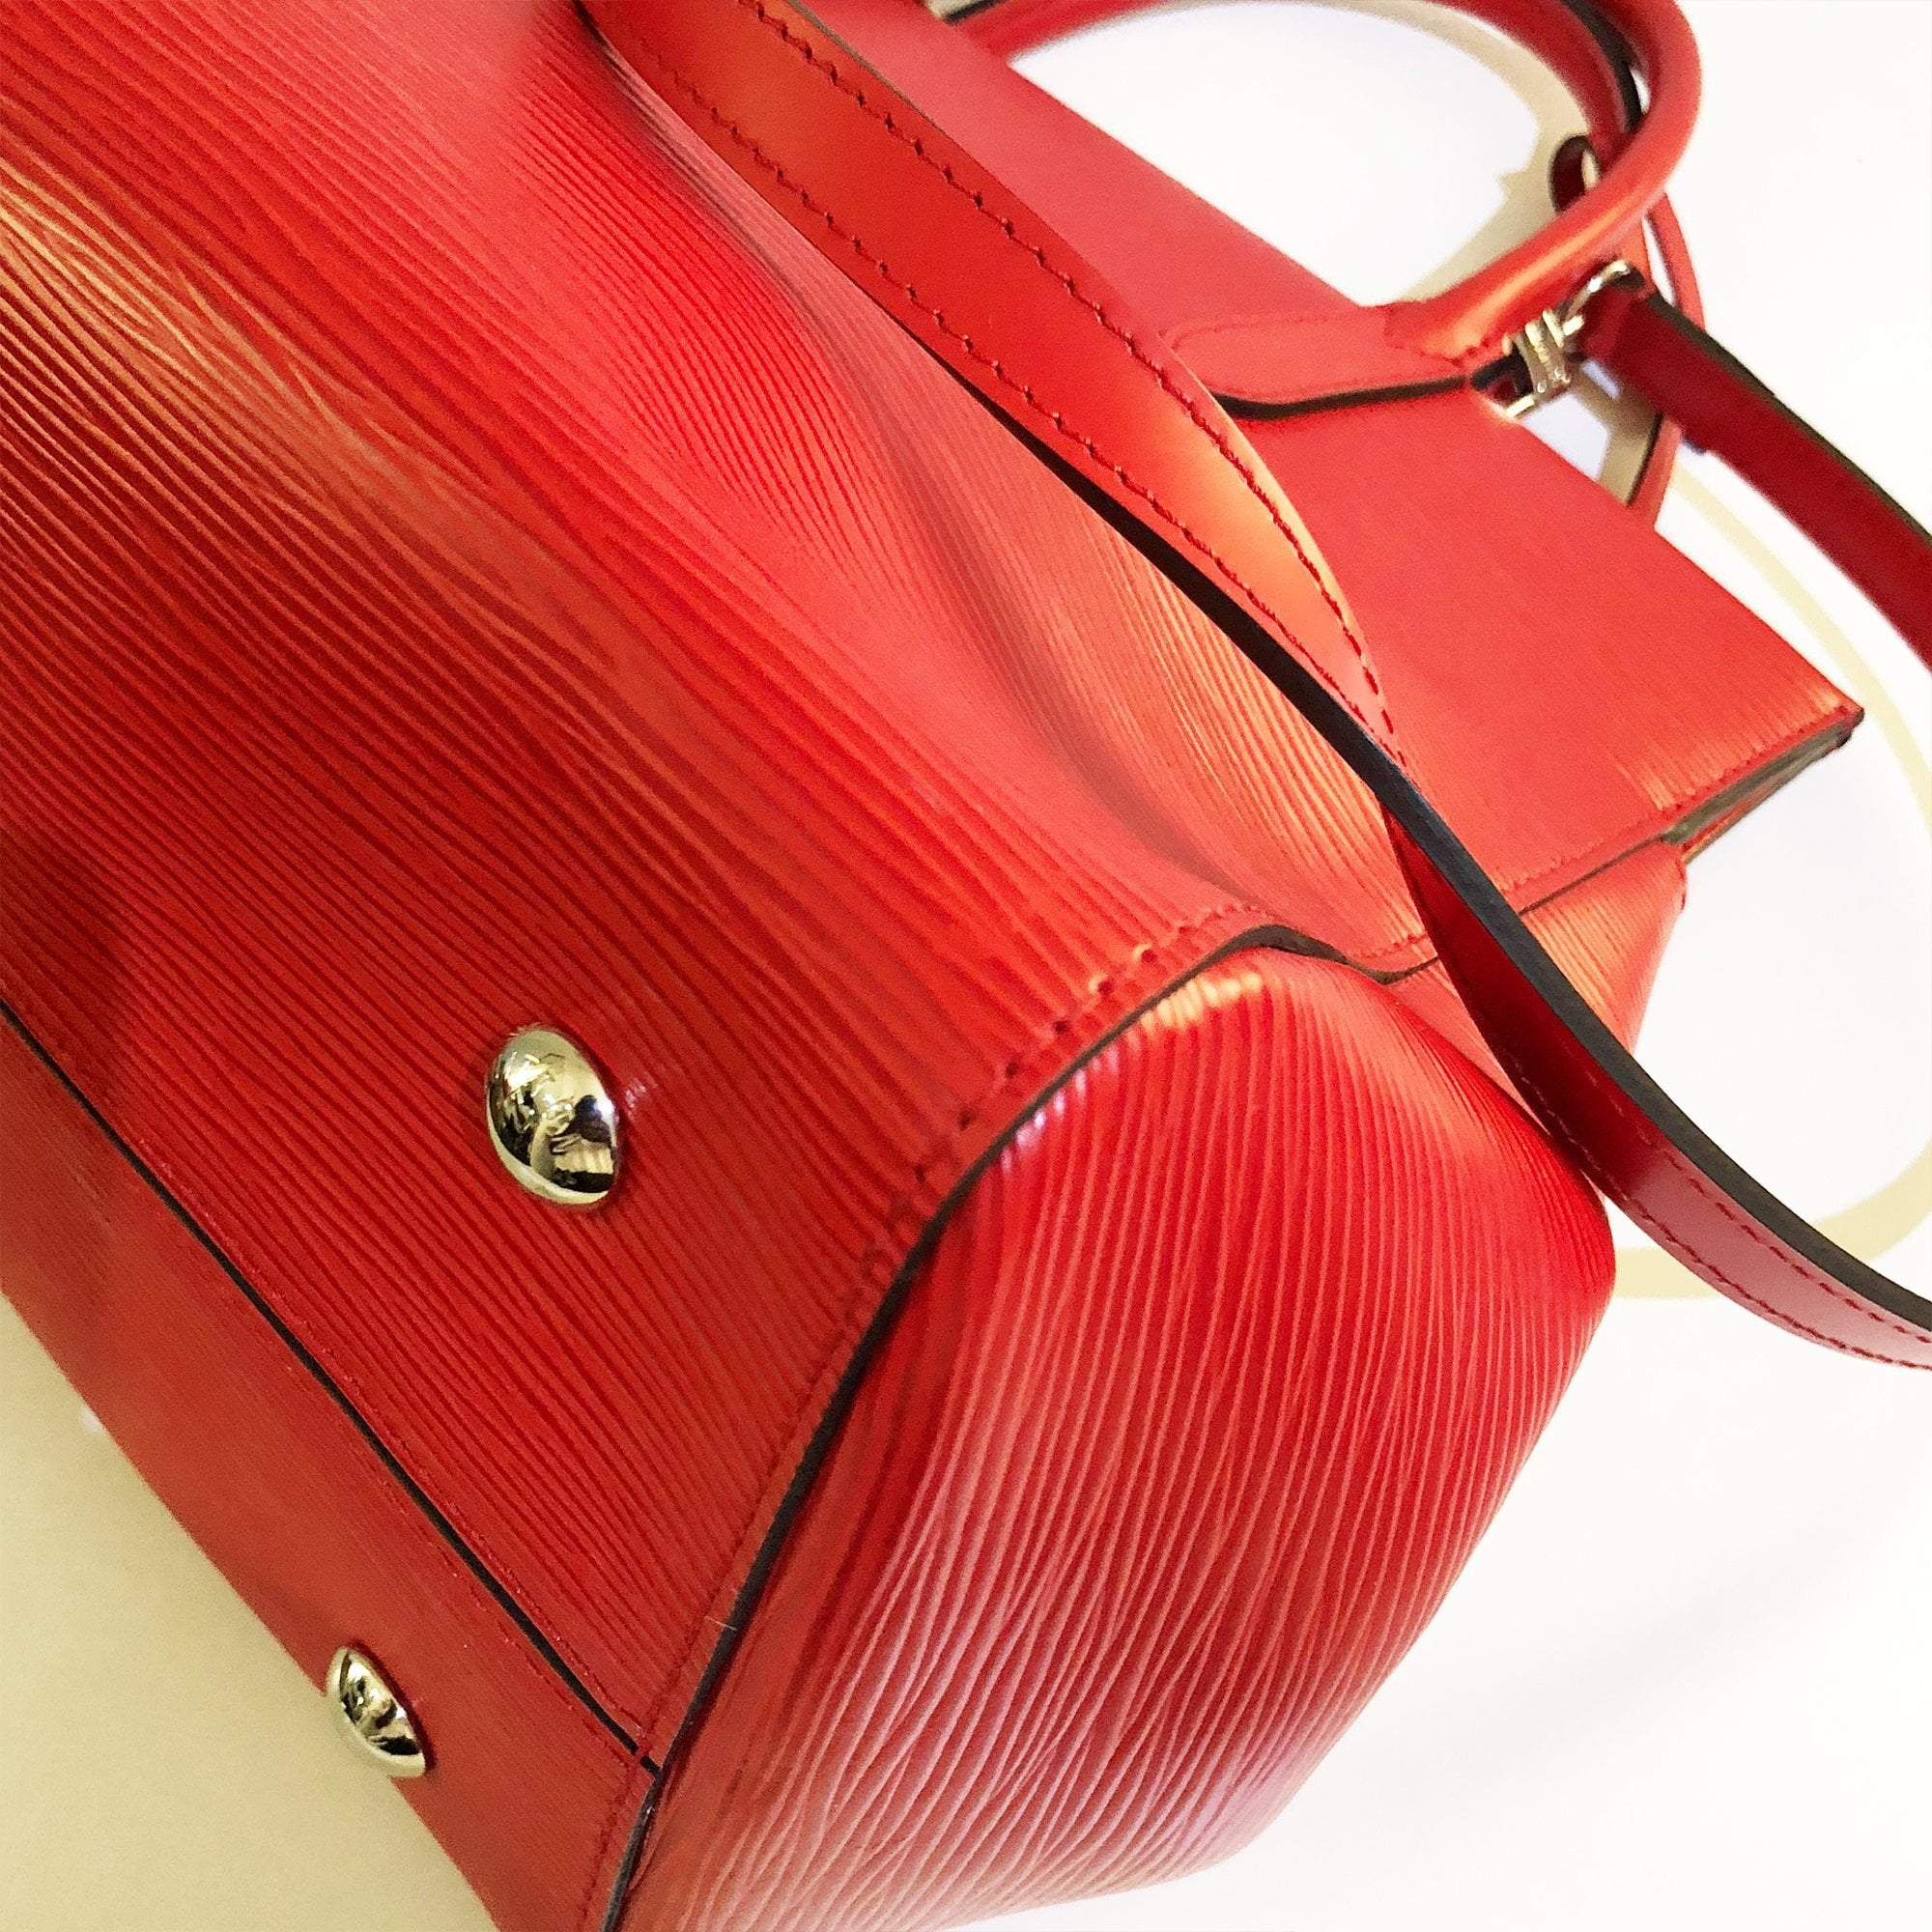 Louis Vuitton Red Epi Leather Marly MM Handbag